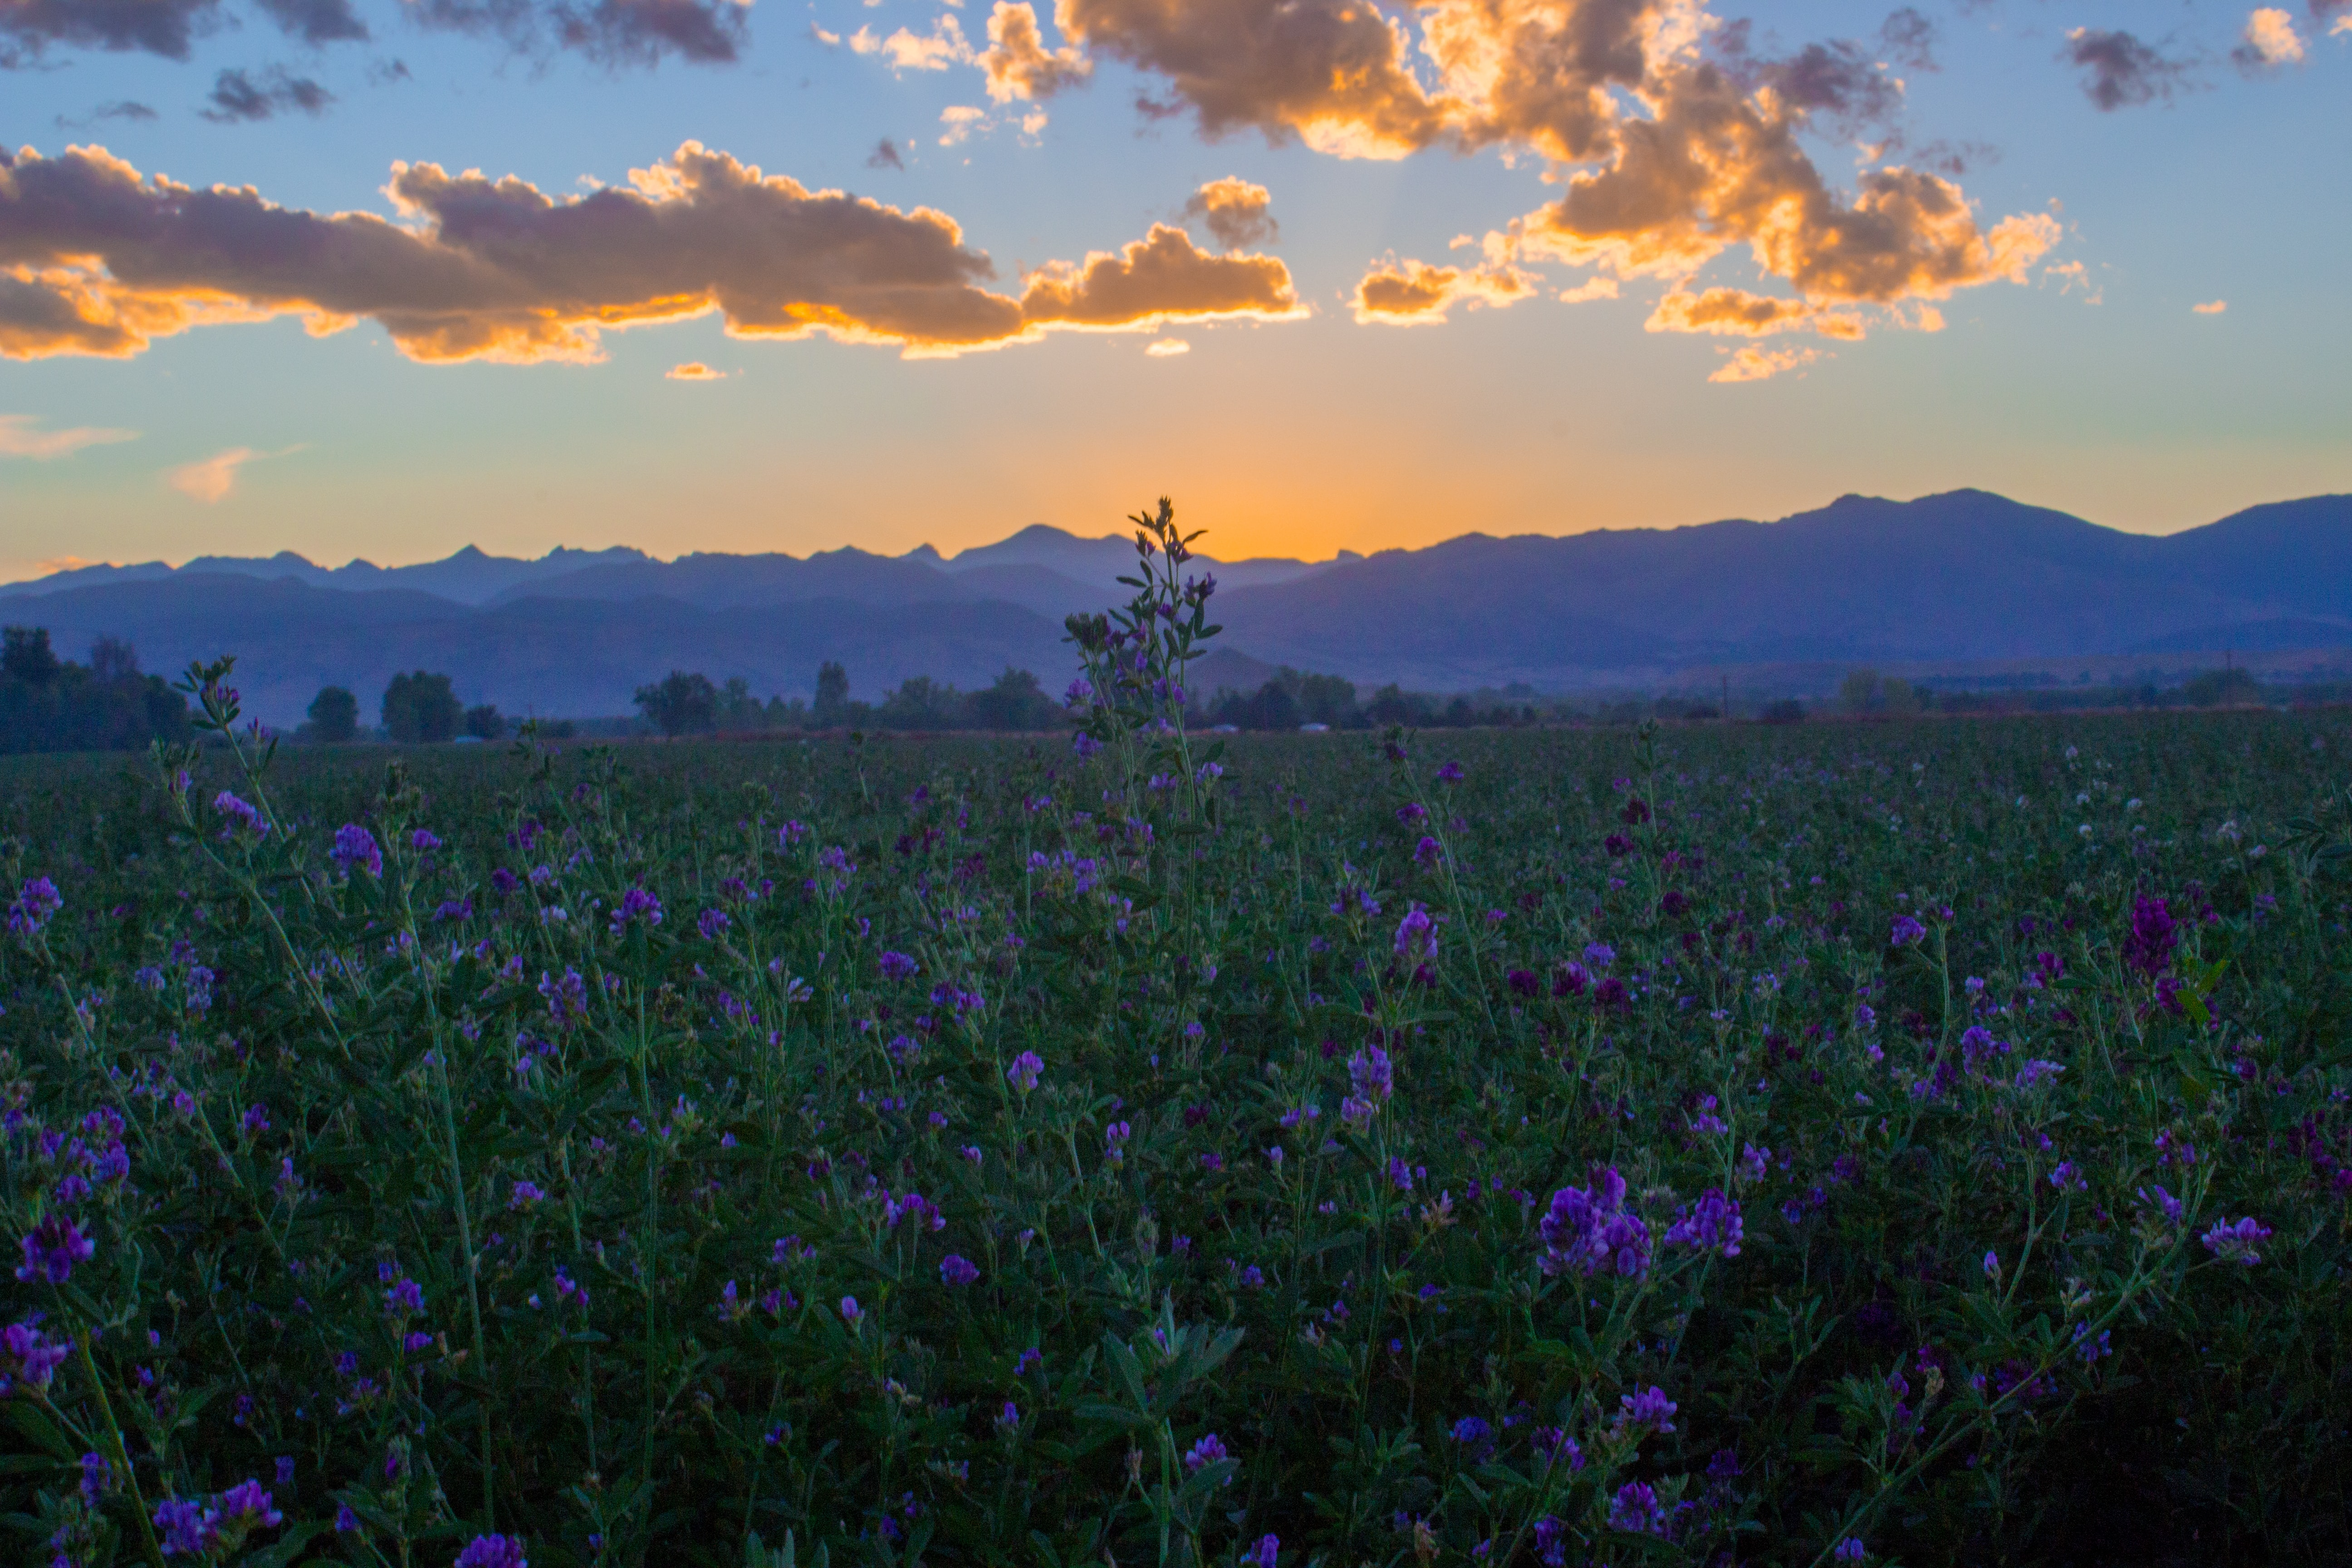 purple flower field near mountain range under golden house